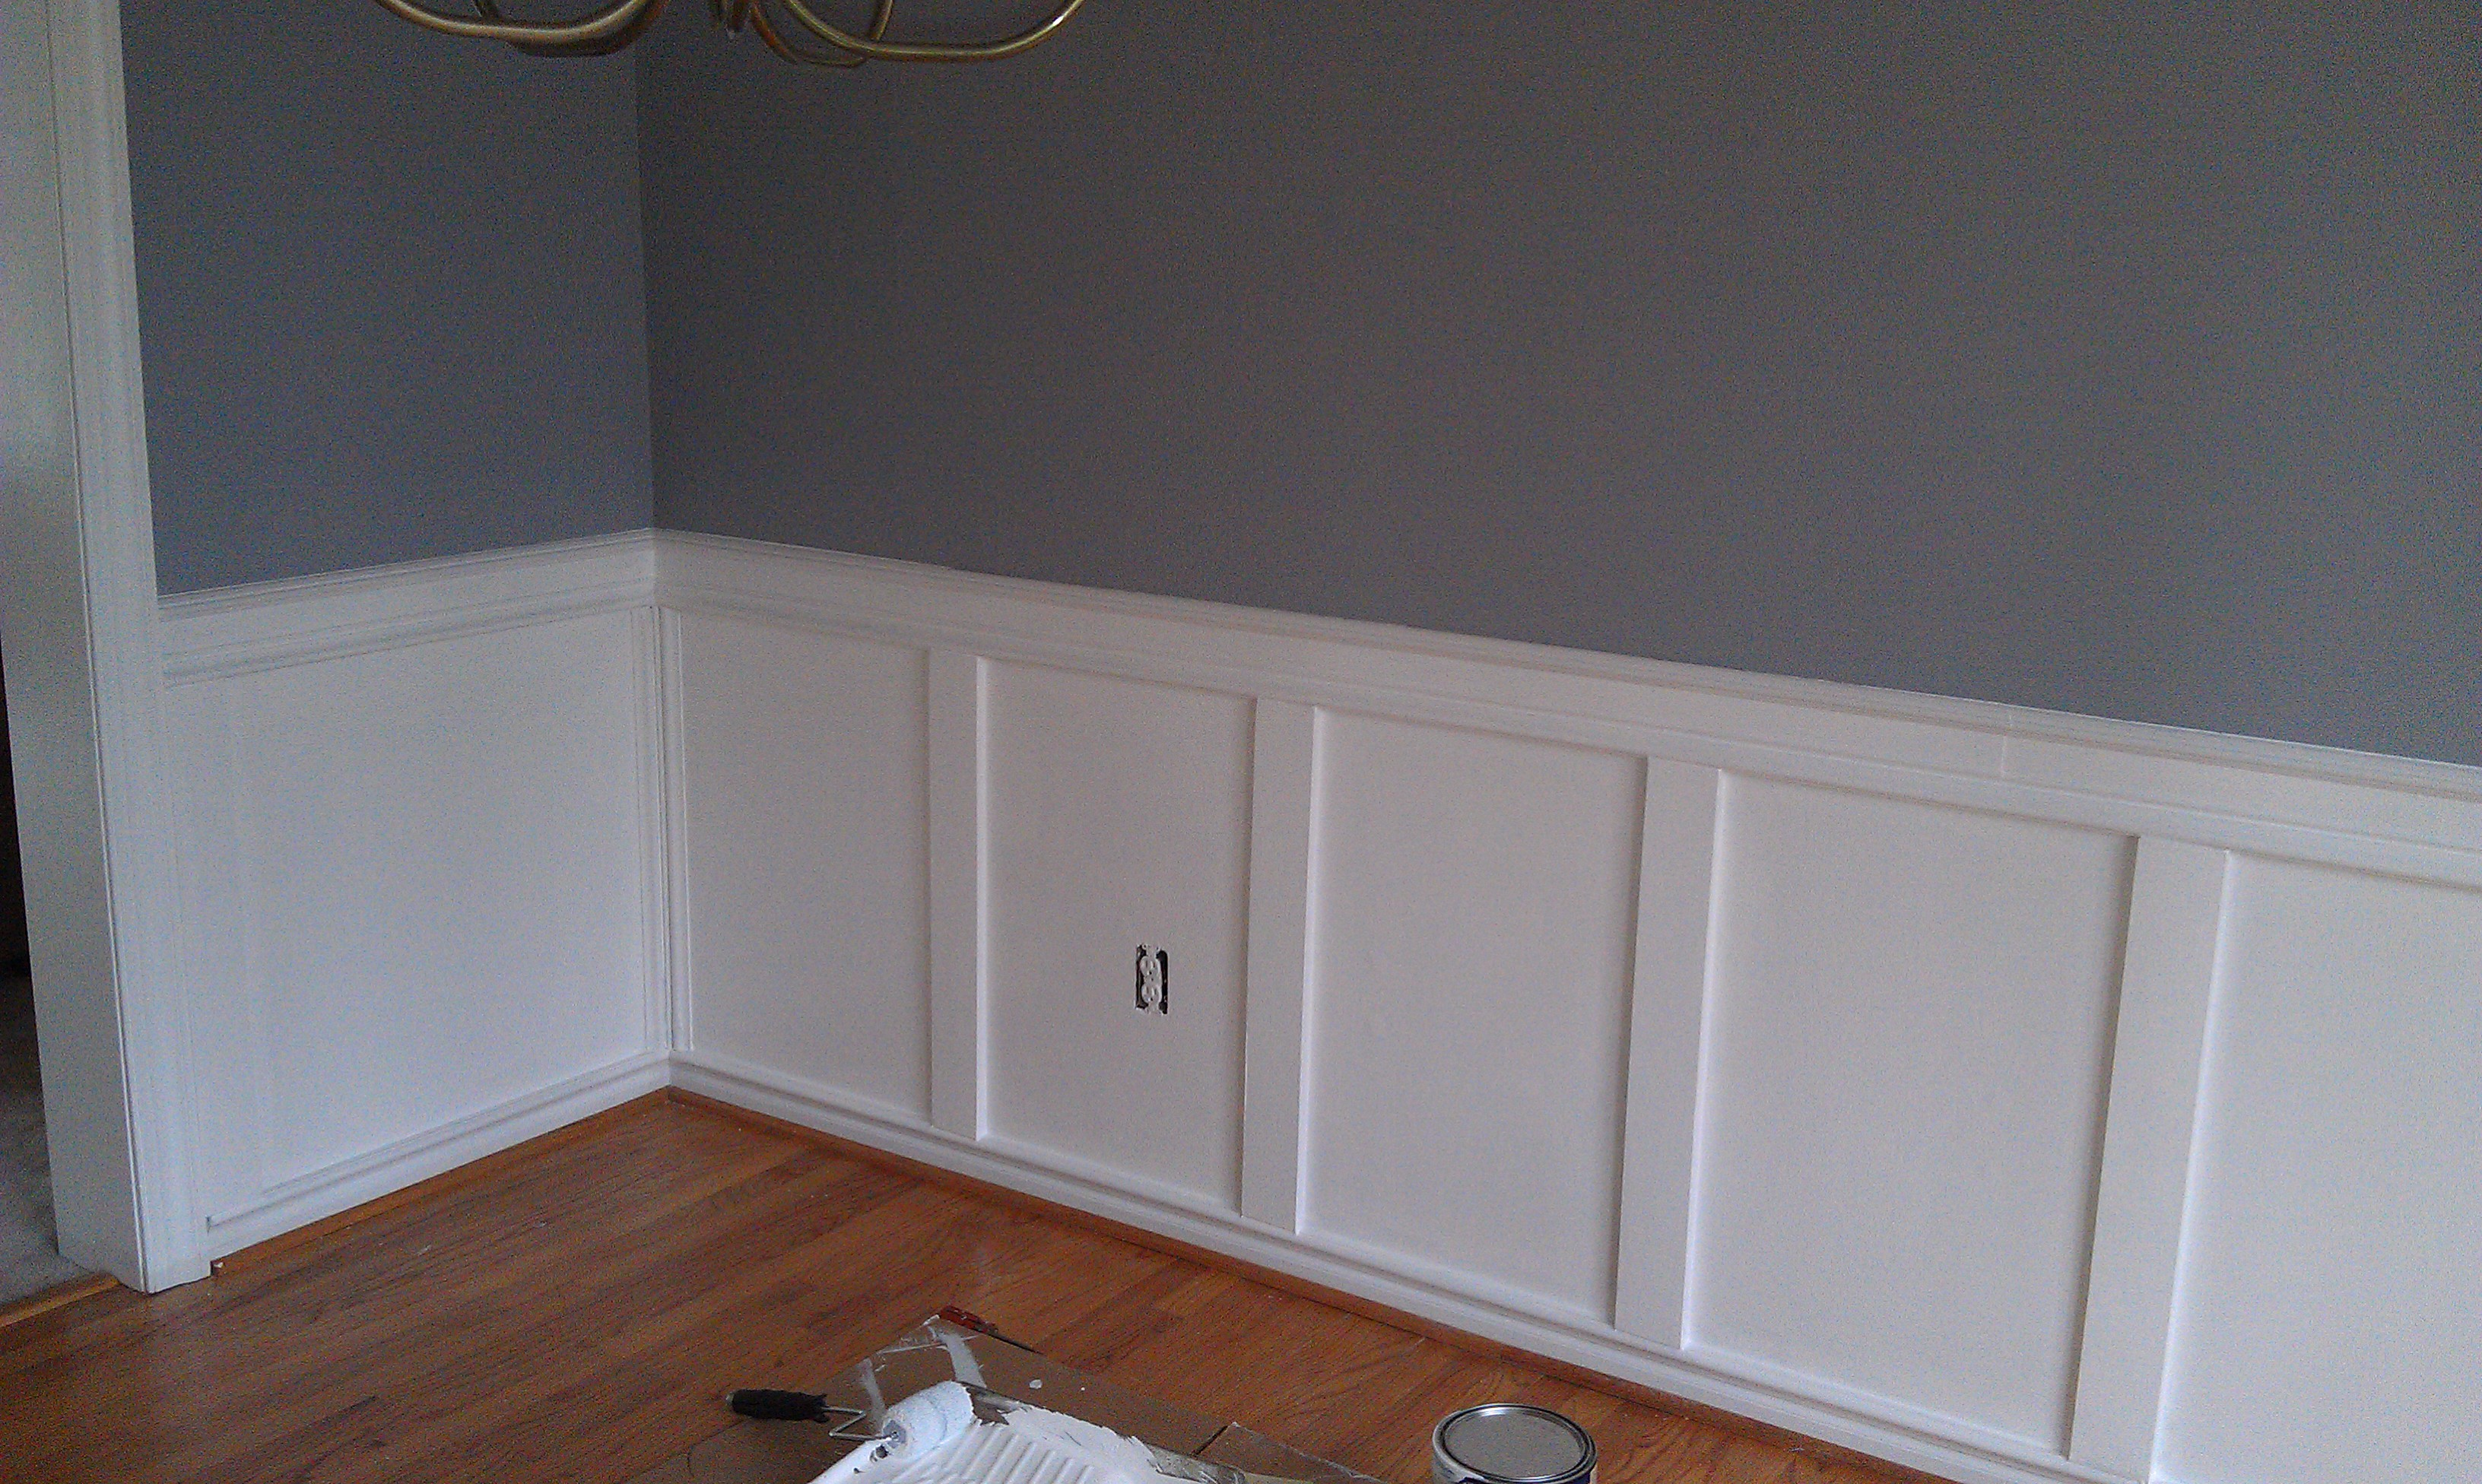 bedroom wainscoting ideas - Wainscoting Design Ideas